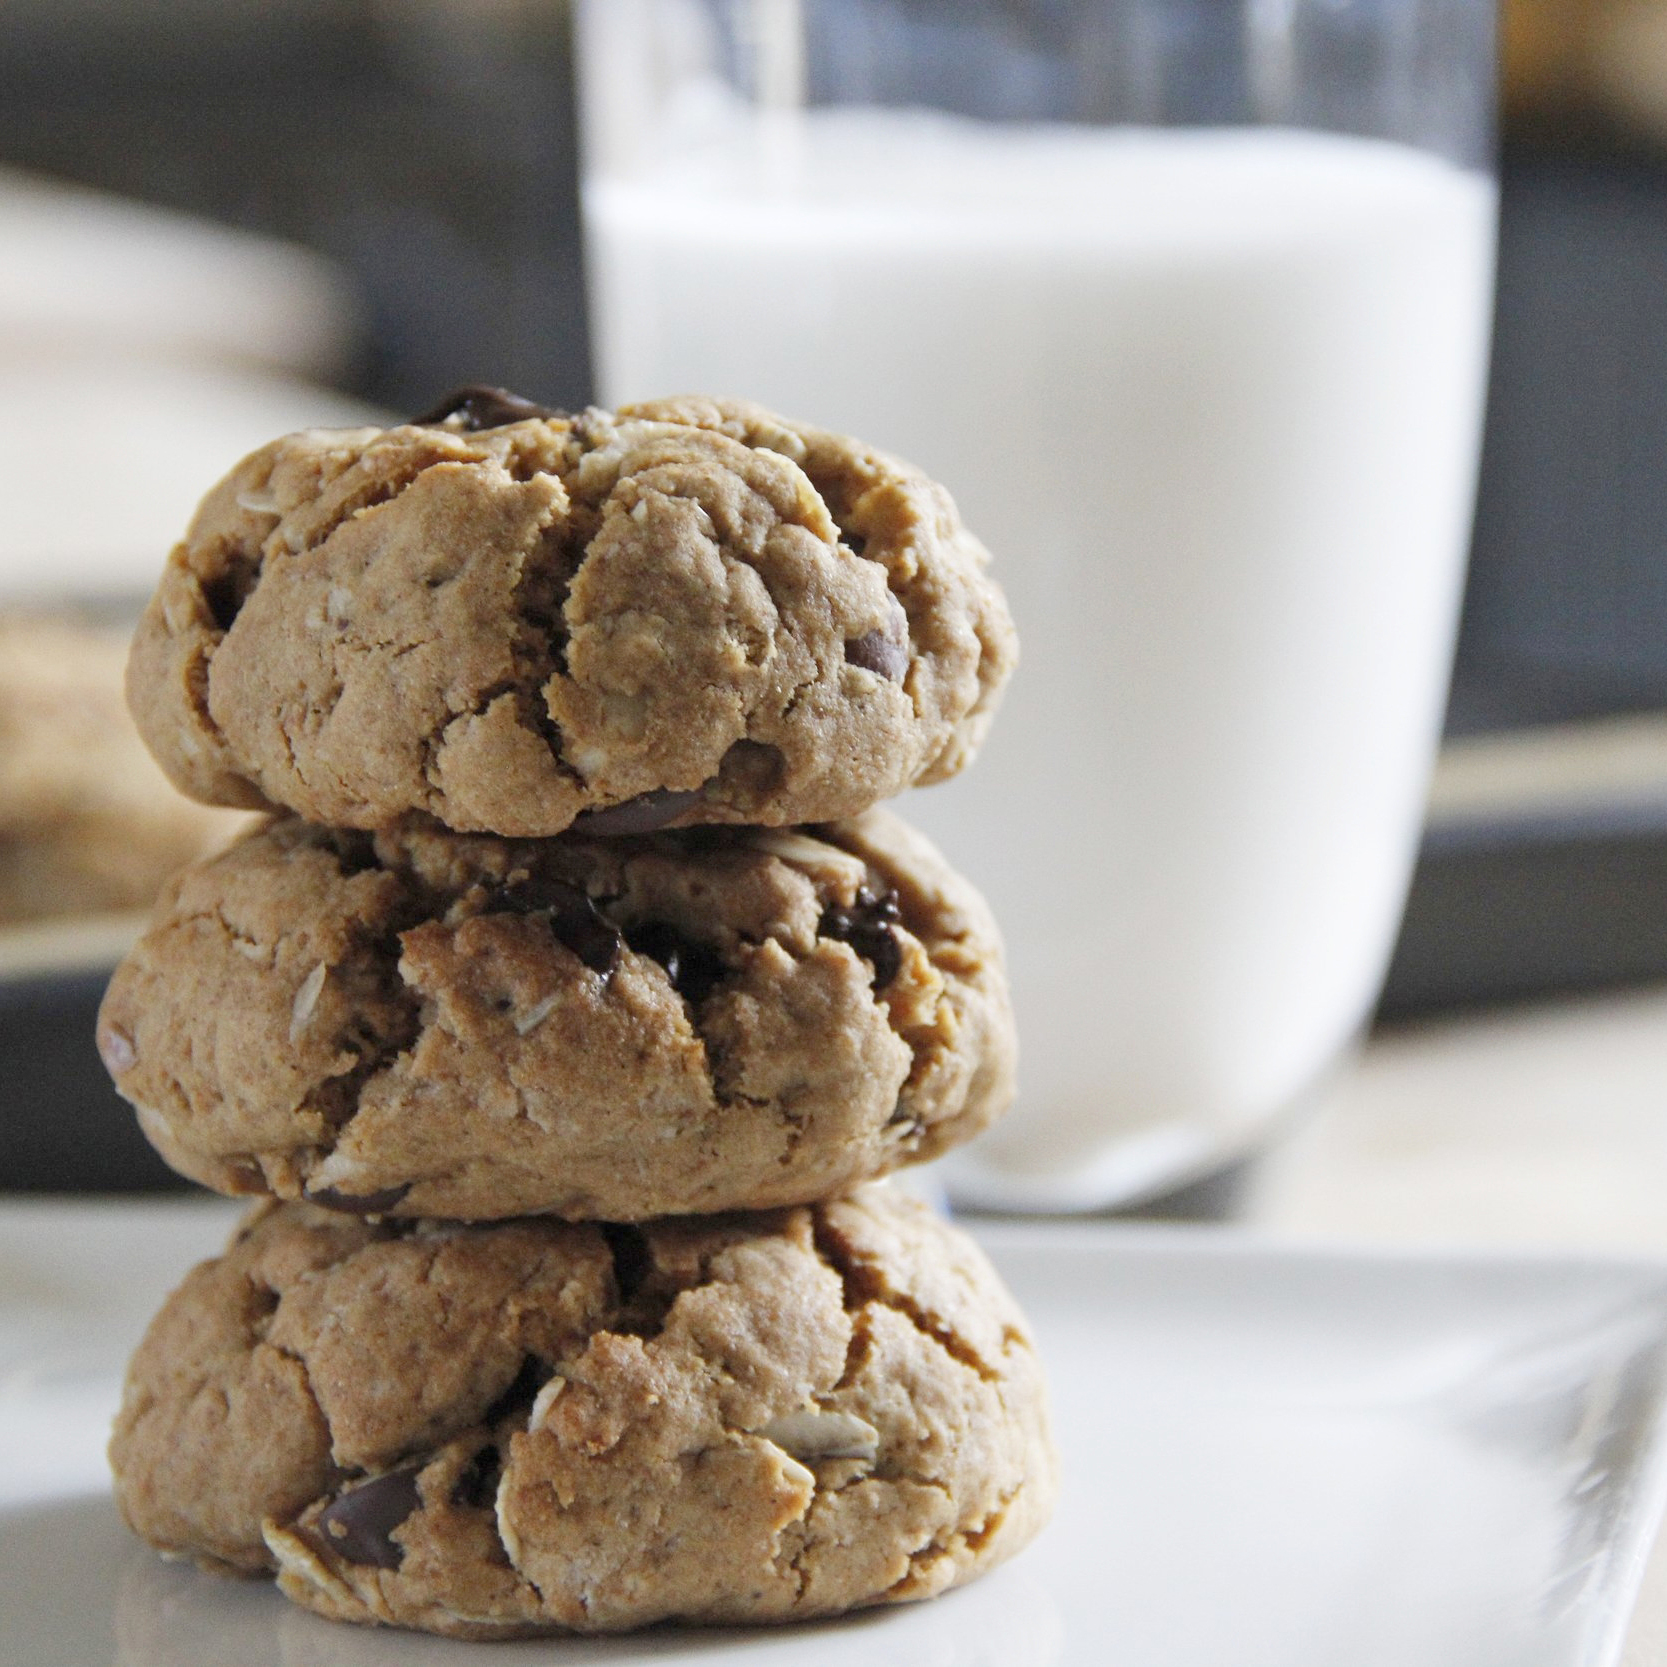 Chocolate Chip Cookies stacked up next to a glass of milk